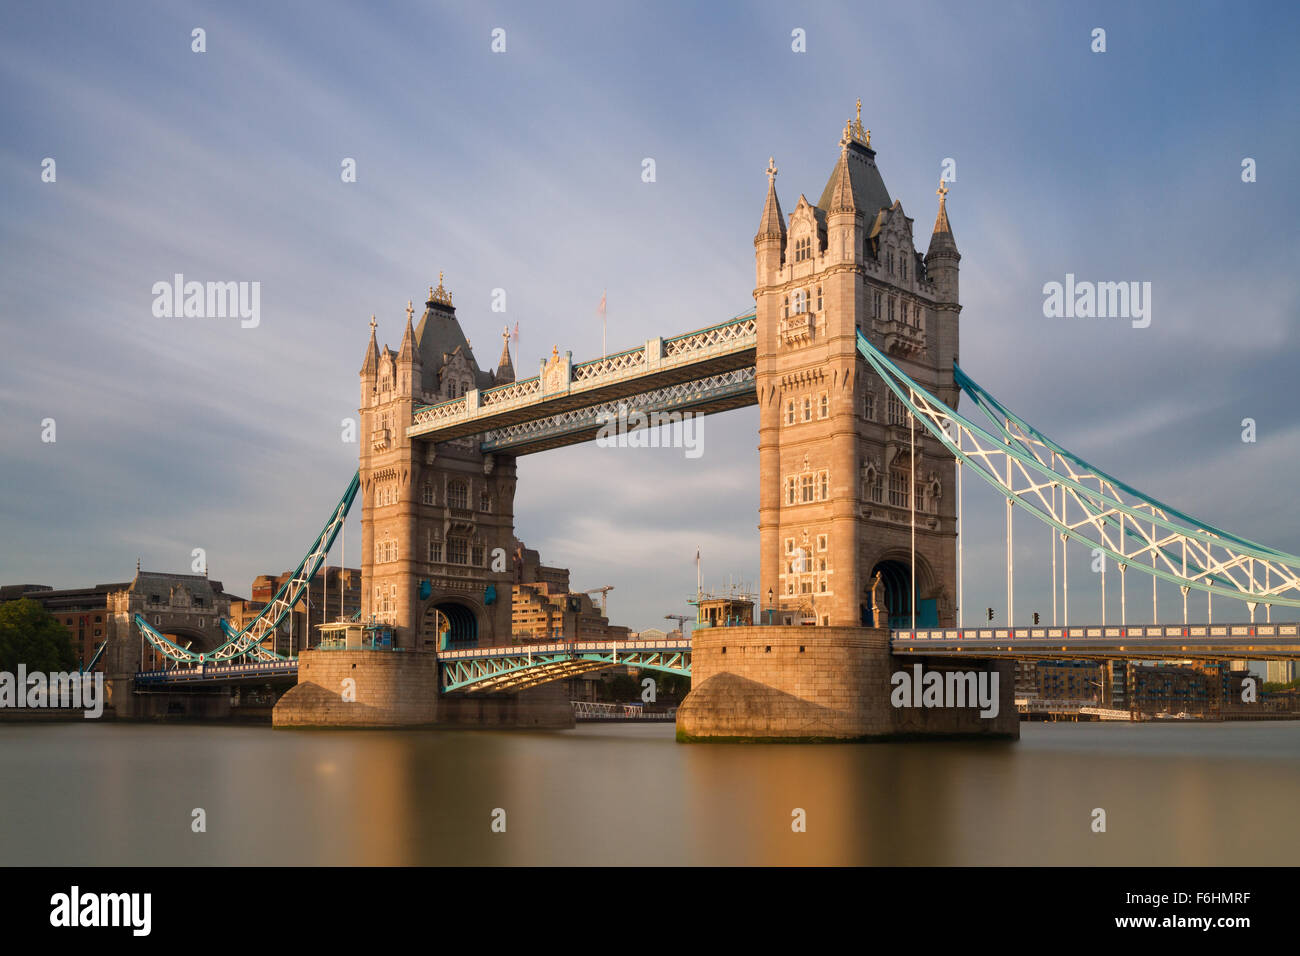 Tower bridge in the evening sun - Long Exposure version, London, England - Stock Image